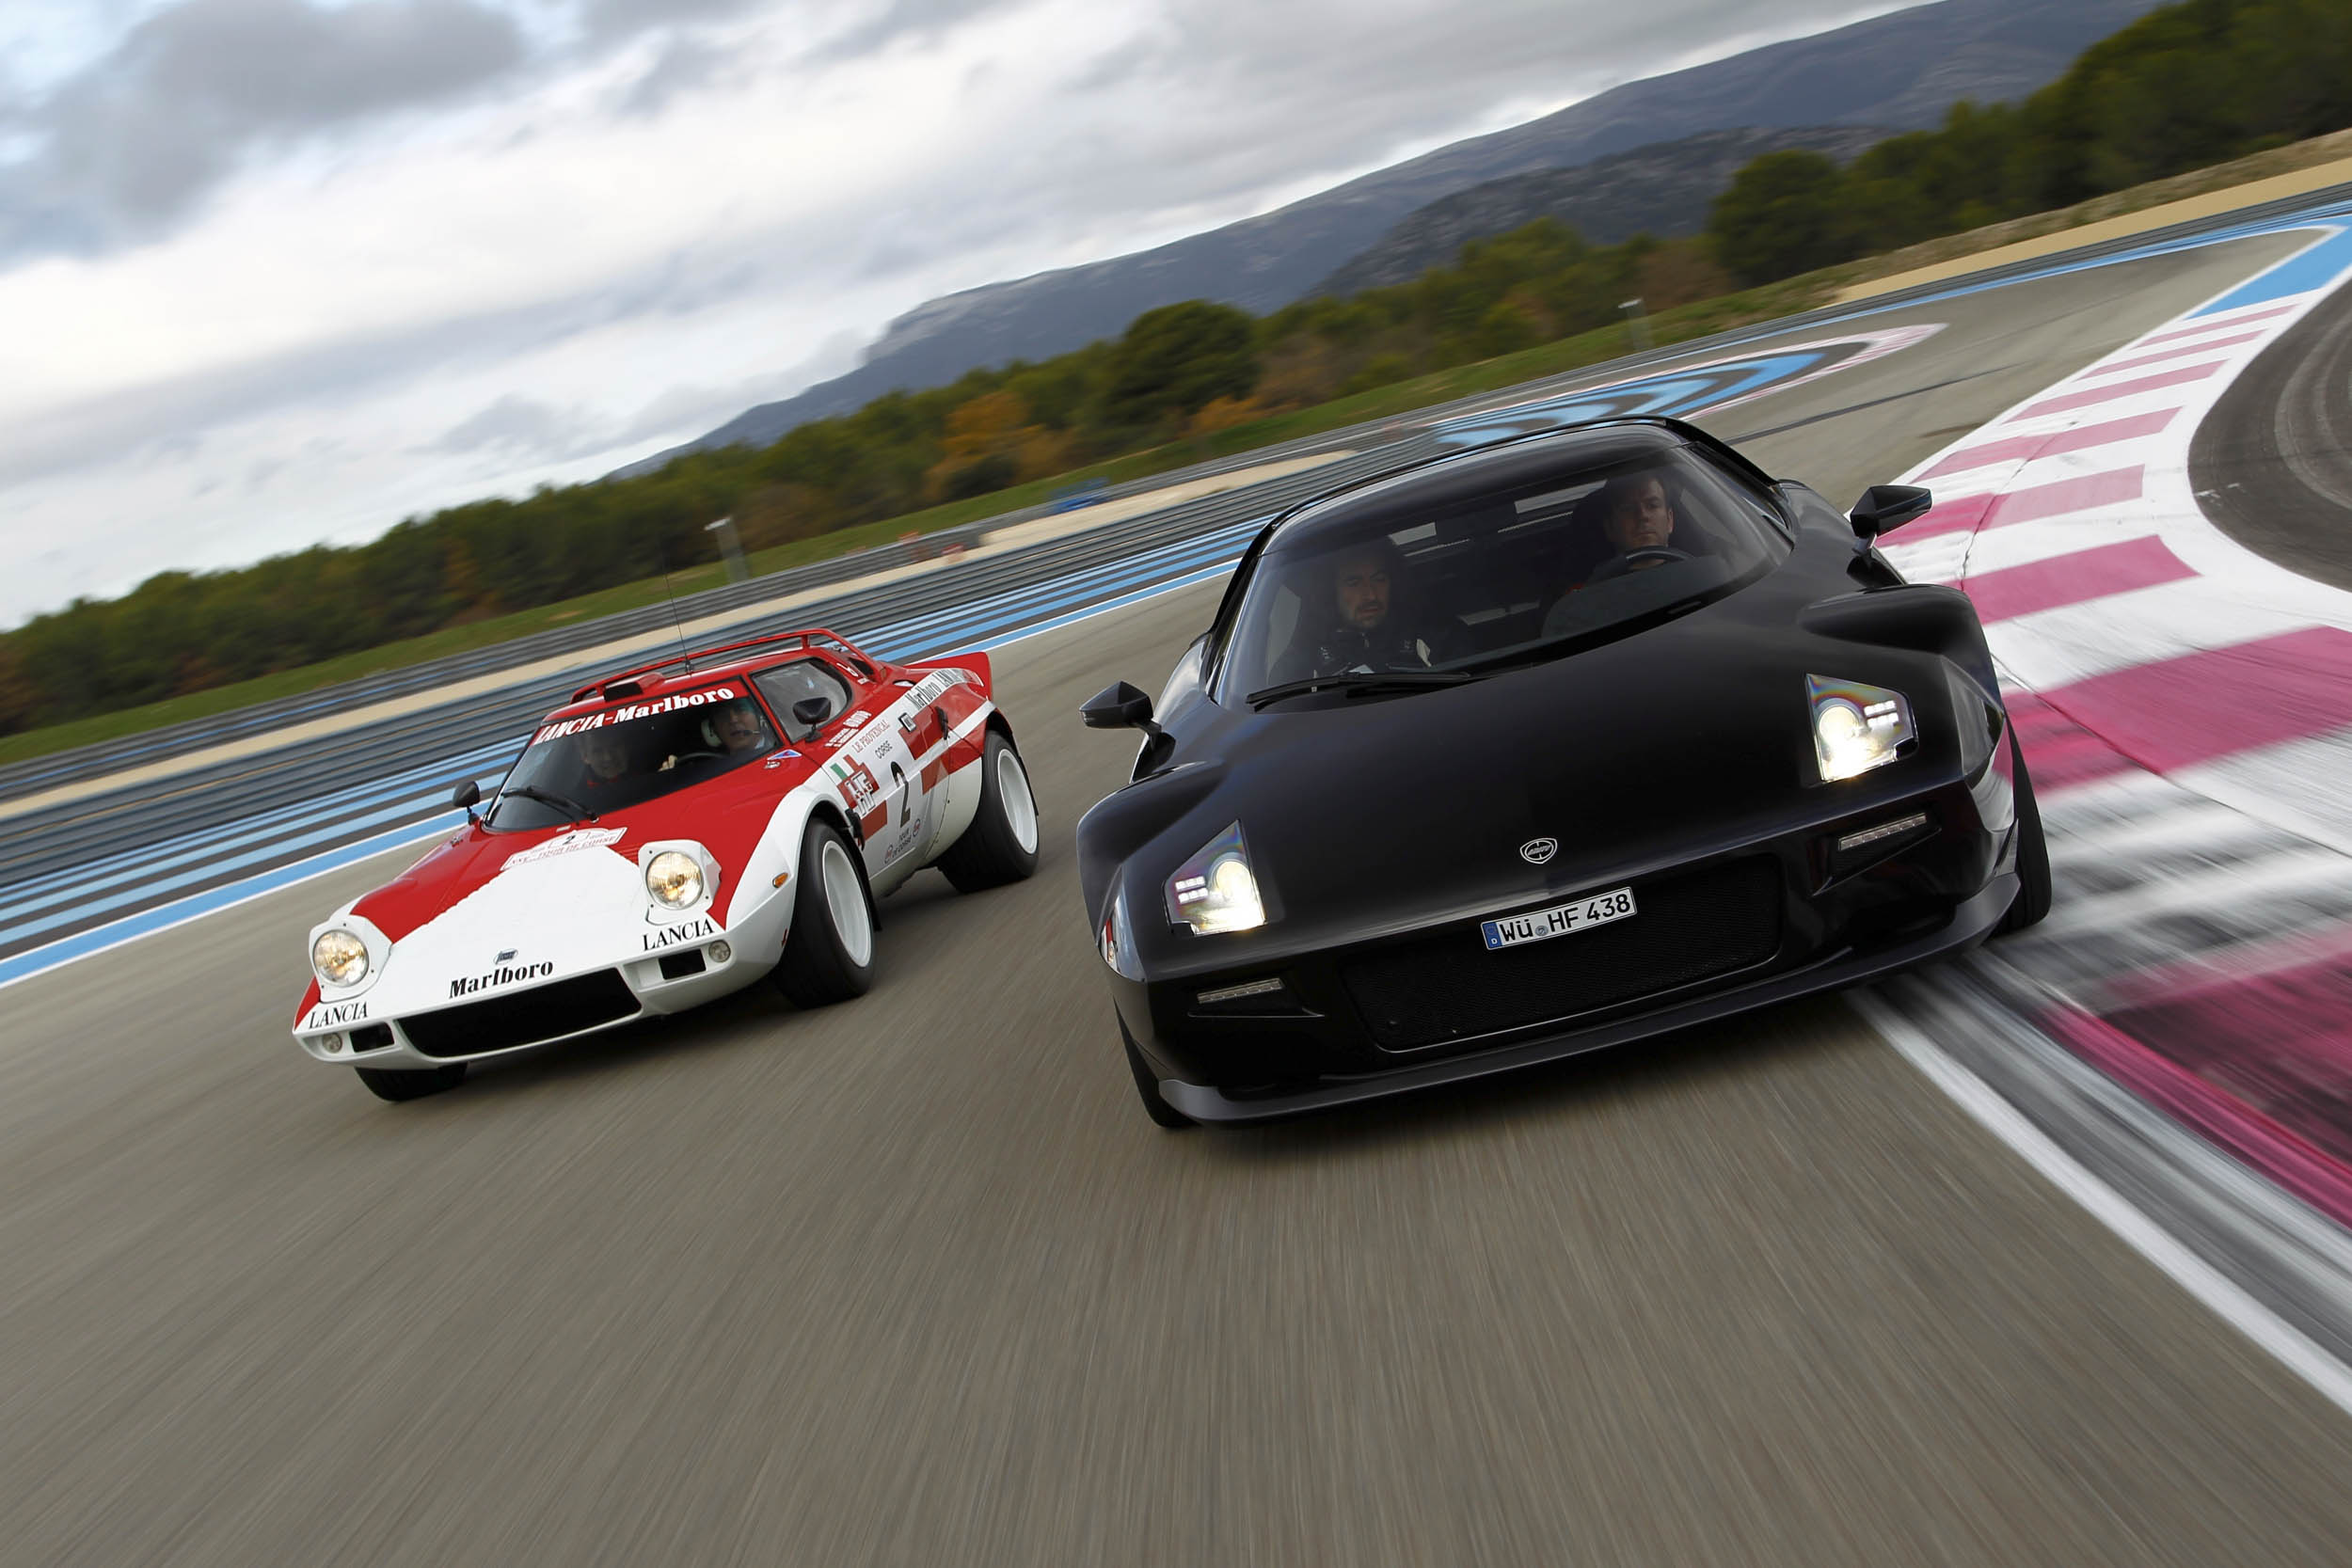 New Stratos racing on the track